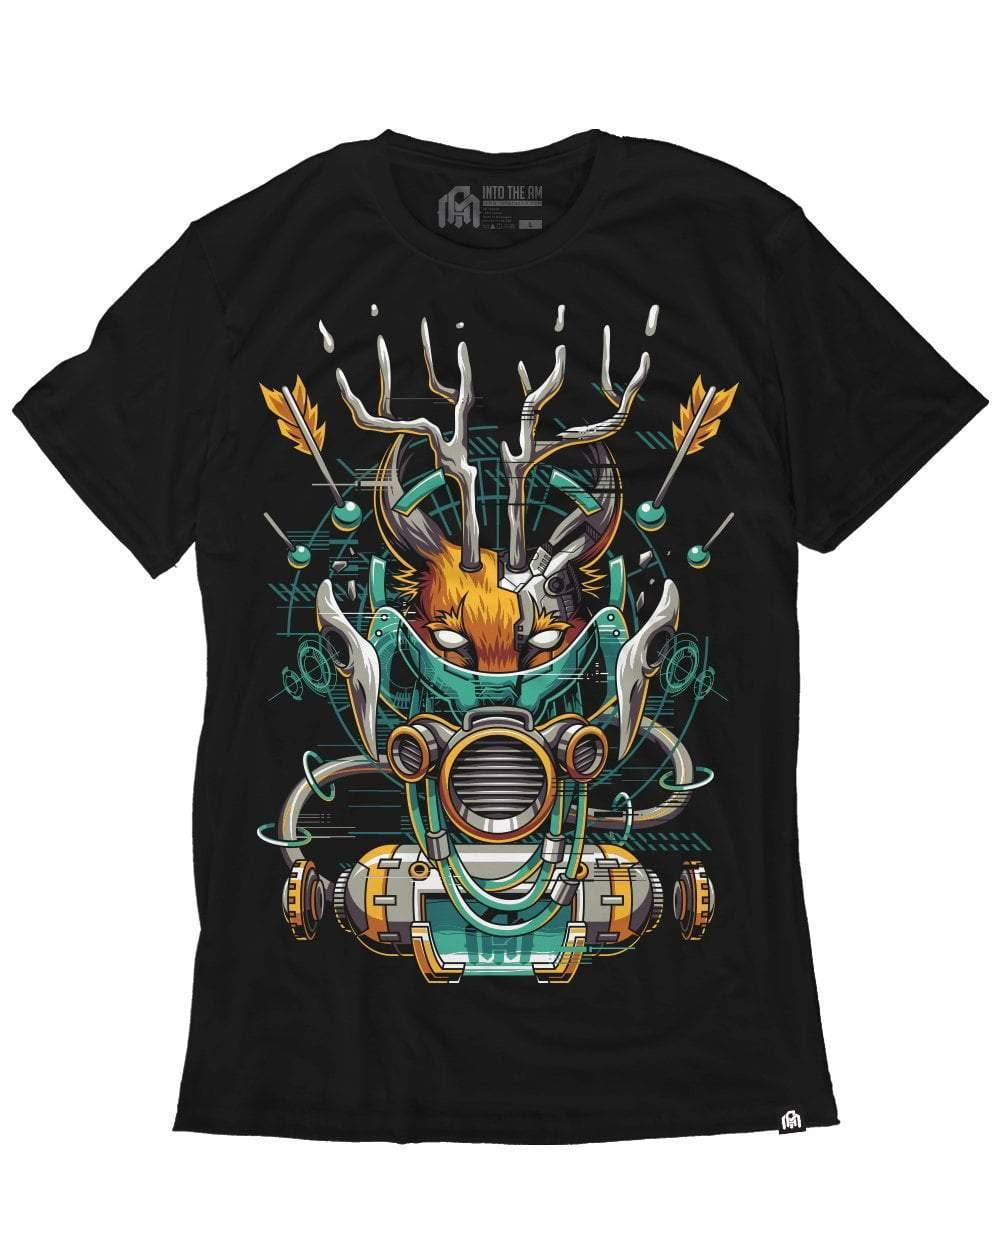 INTO THE AM Caracal Men's Graphic Tee Shirt (Small)